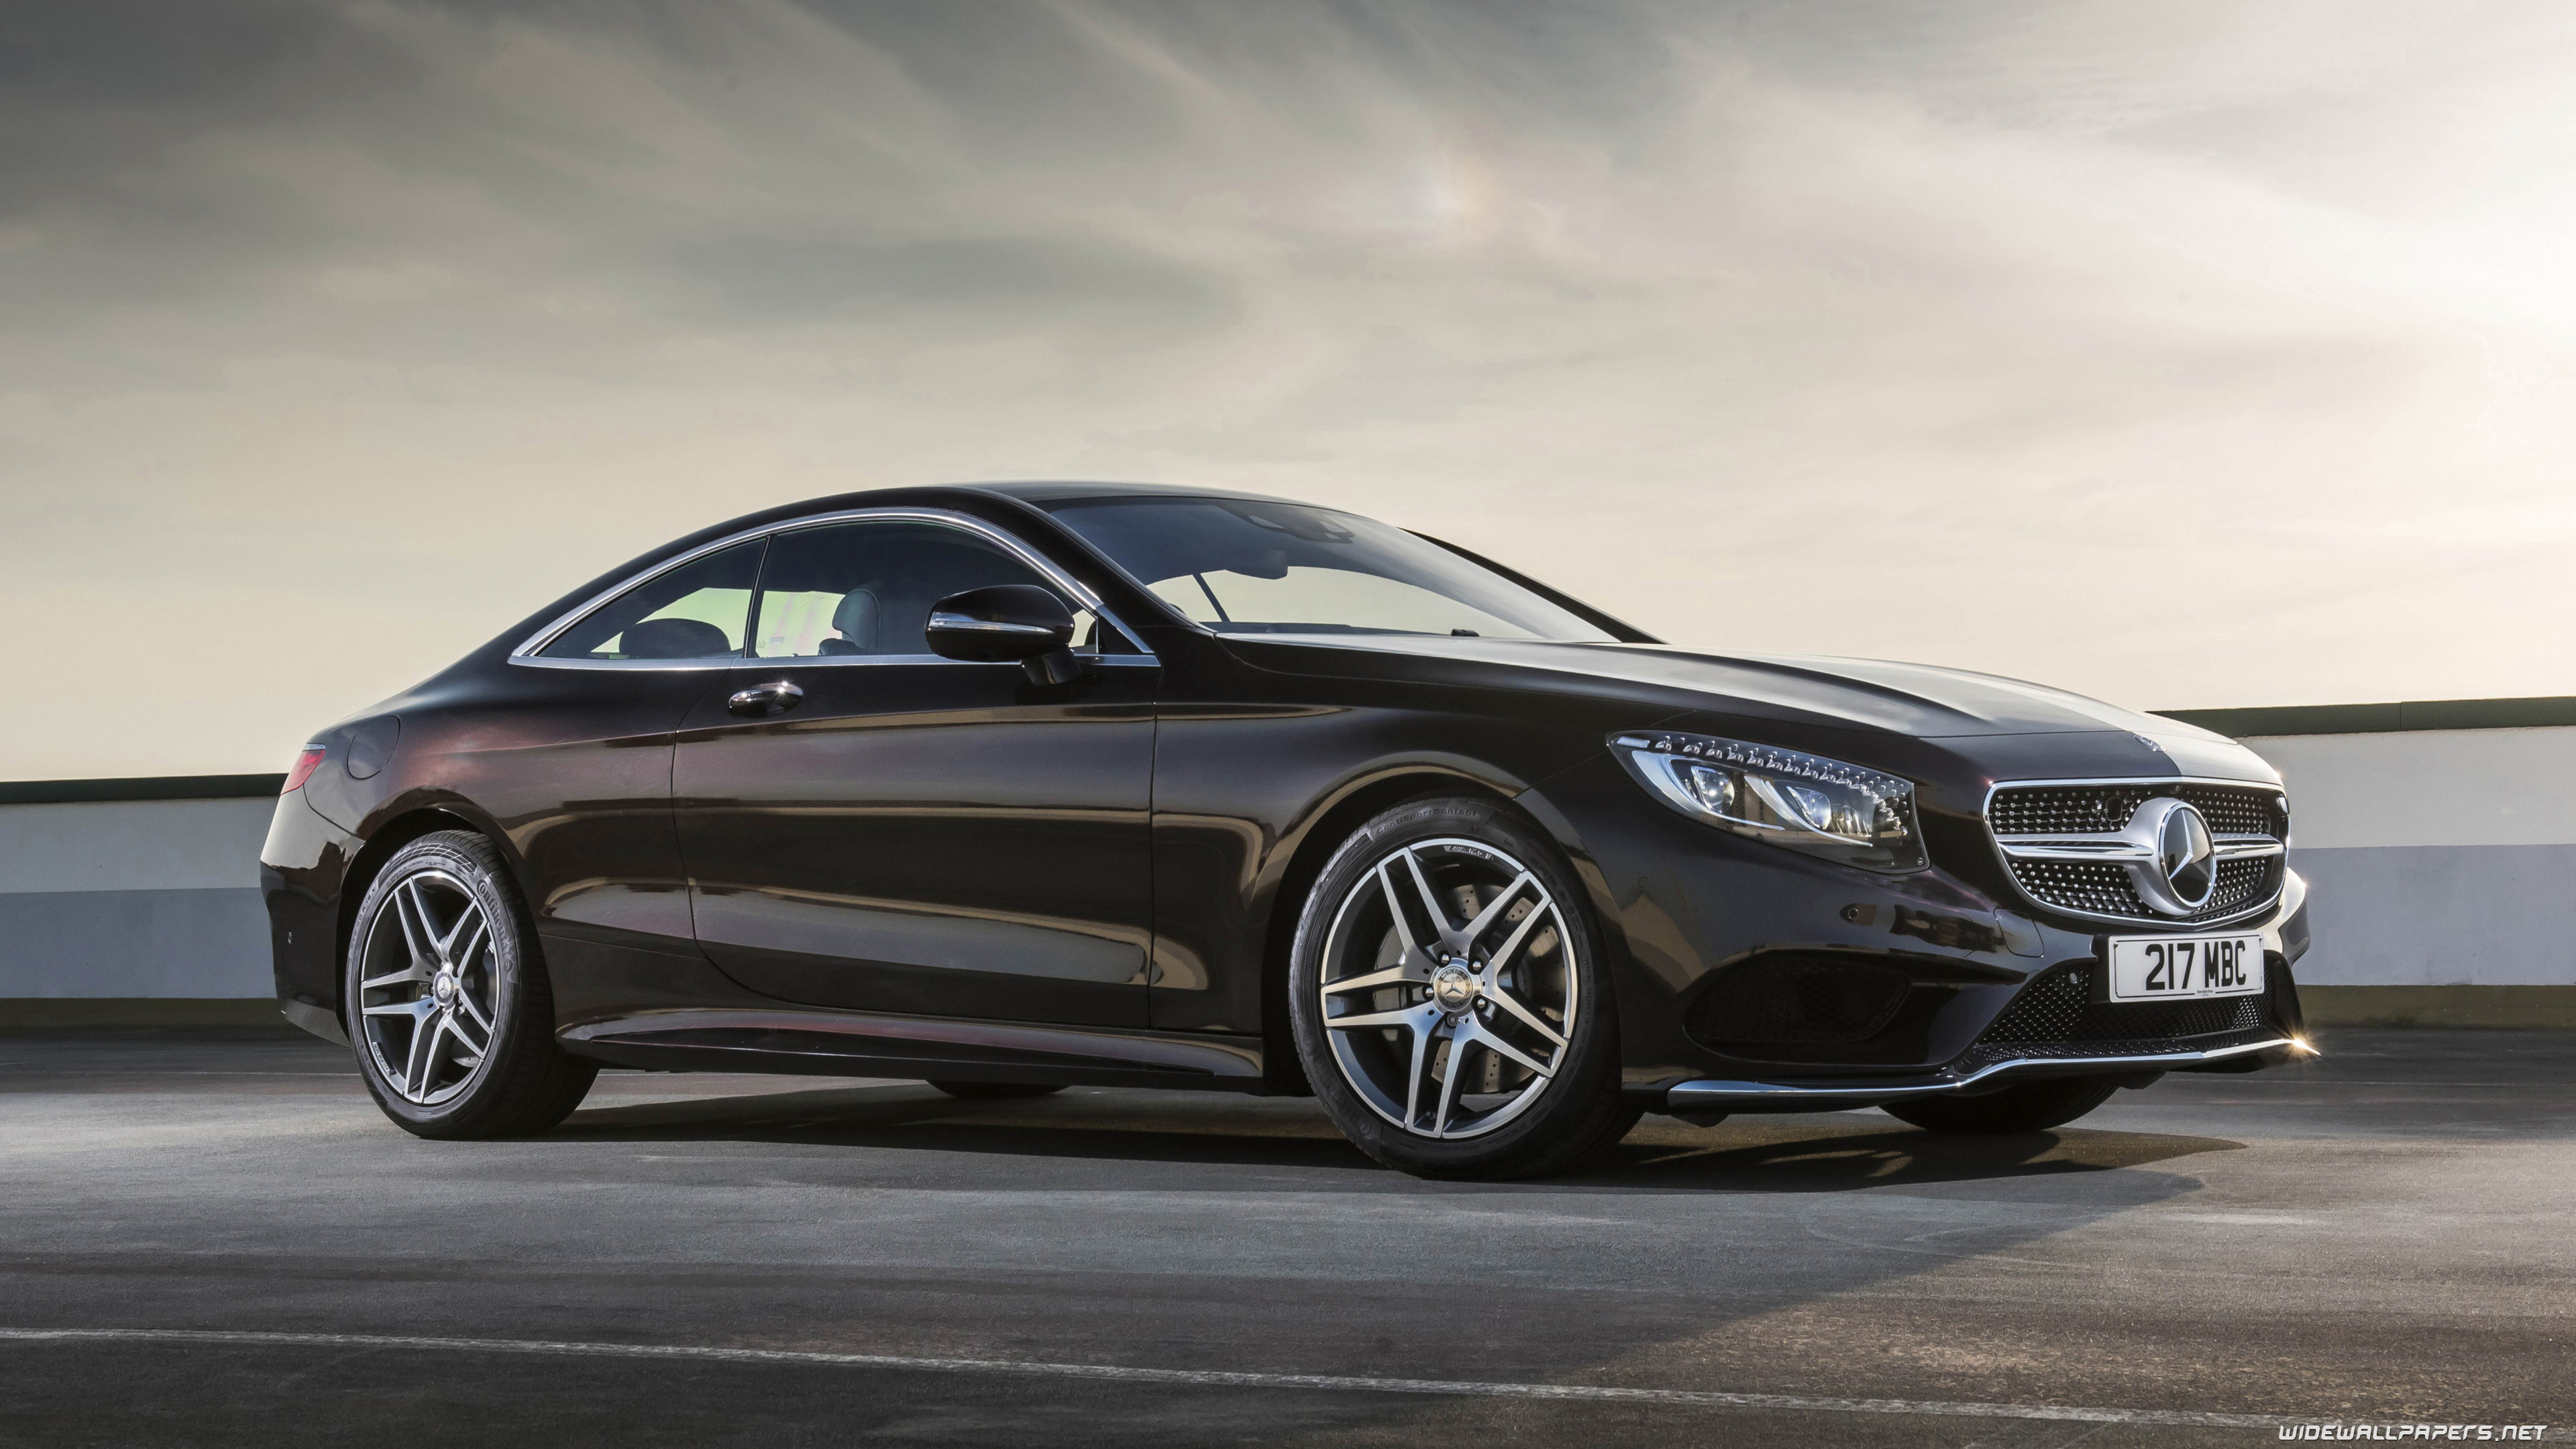 mercedes benz s class coupe cars desktop wallpapers 4k ultra hd. Black Bedroom Furniture Sets. Home Design Ideas